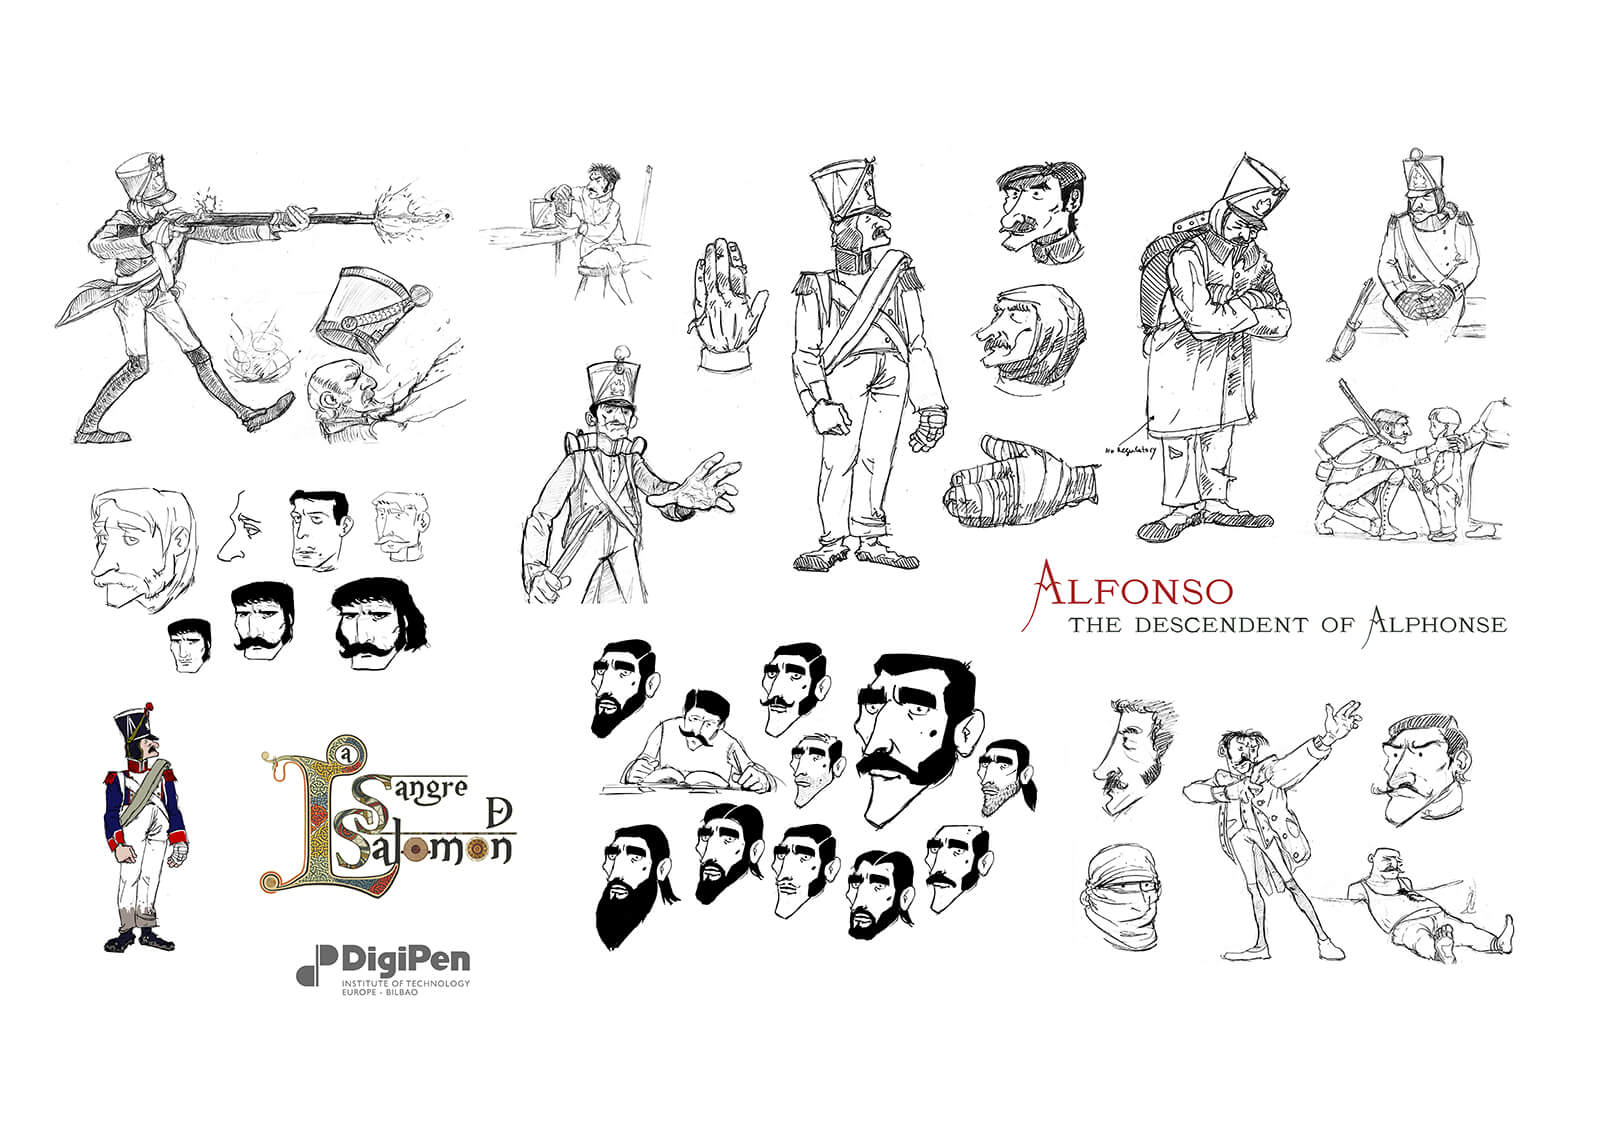 Concept drawings of Alfonso, the descendent of Alphonse, from La Sangre de Salomon